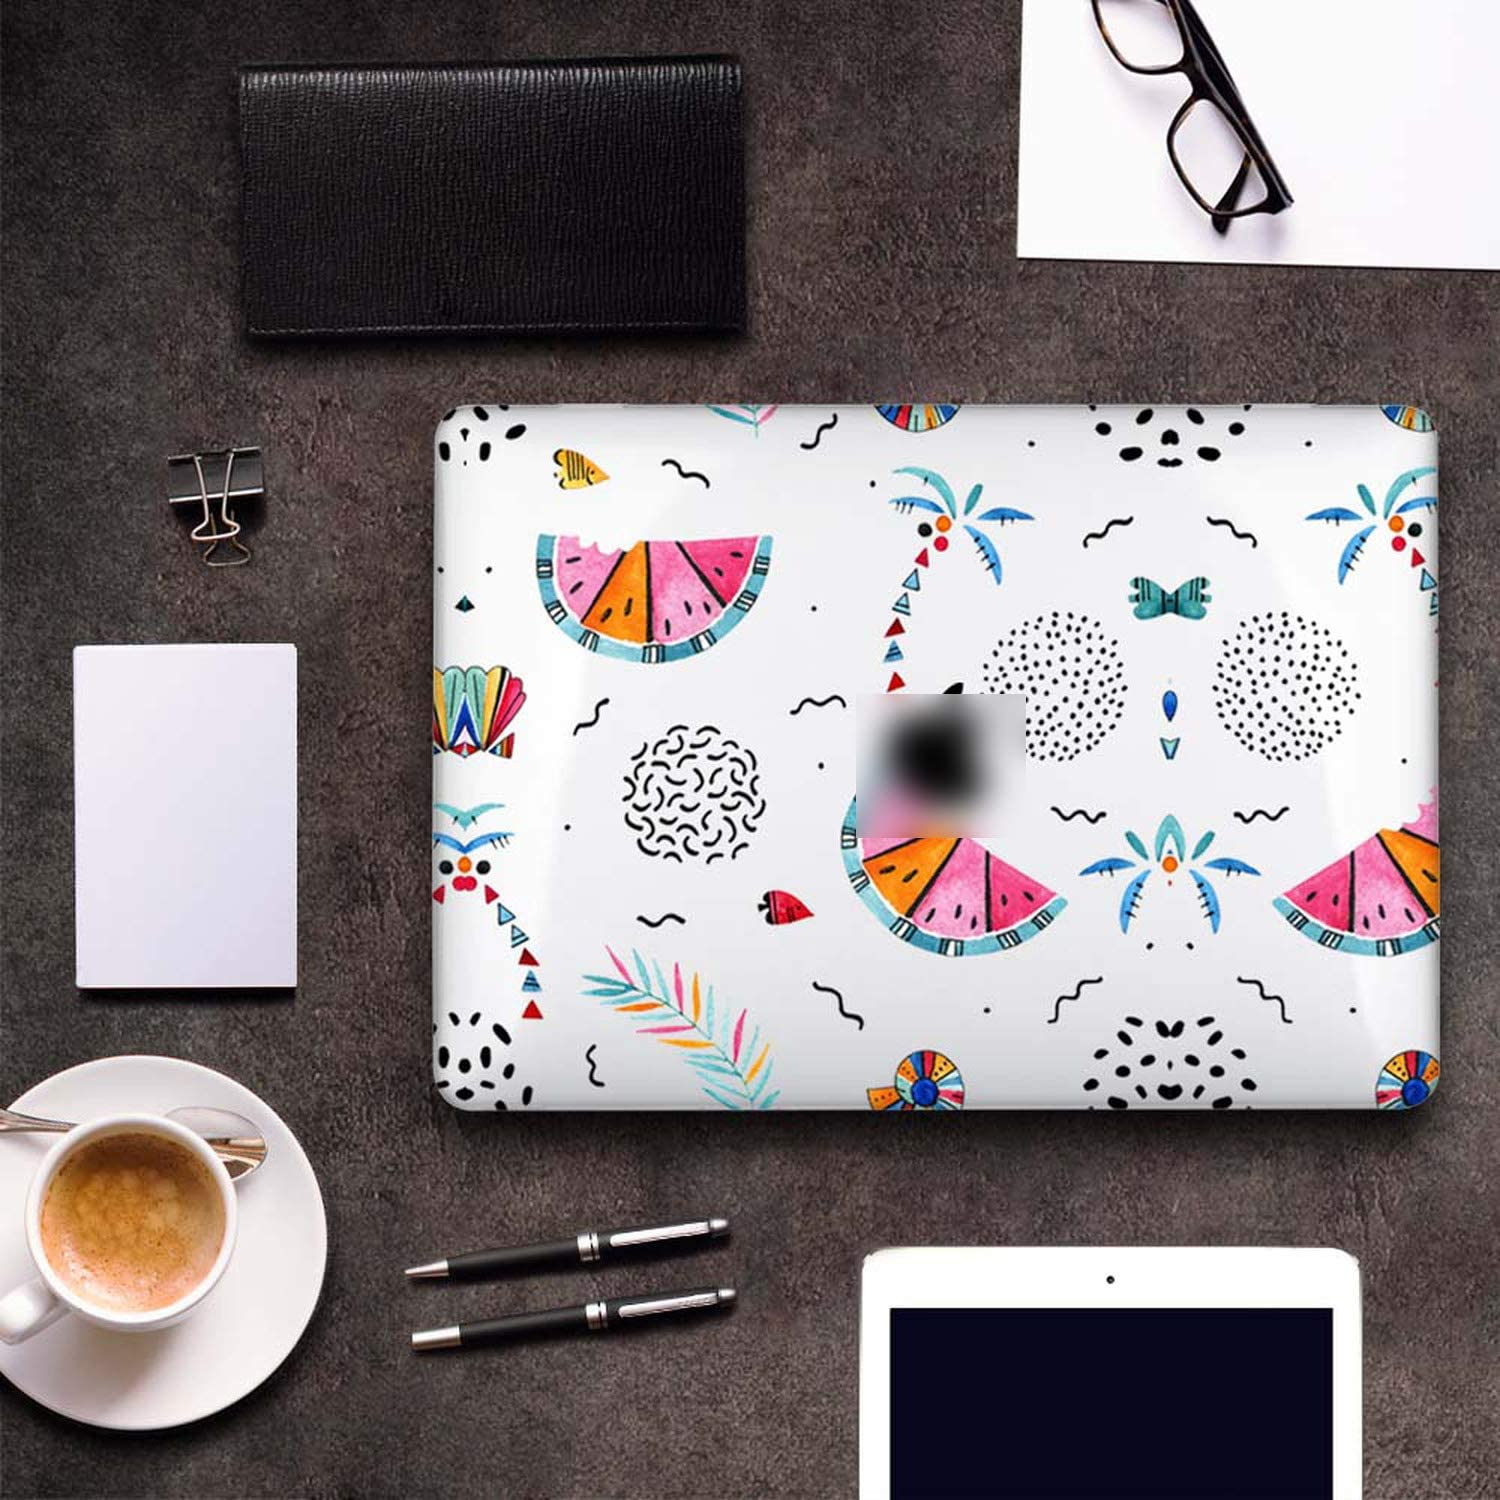 Plastic Hard Case Cover for MacBook 12 Air Pro Retina 11 13 15 for Mac Book New Pro 13.3 15.4 Touch Bar A2159 Summer Pattern-B030-Pro 15 Retina A1398